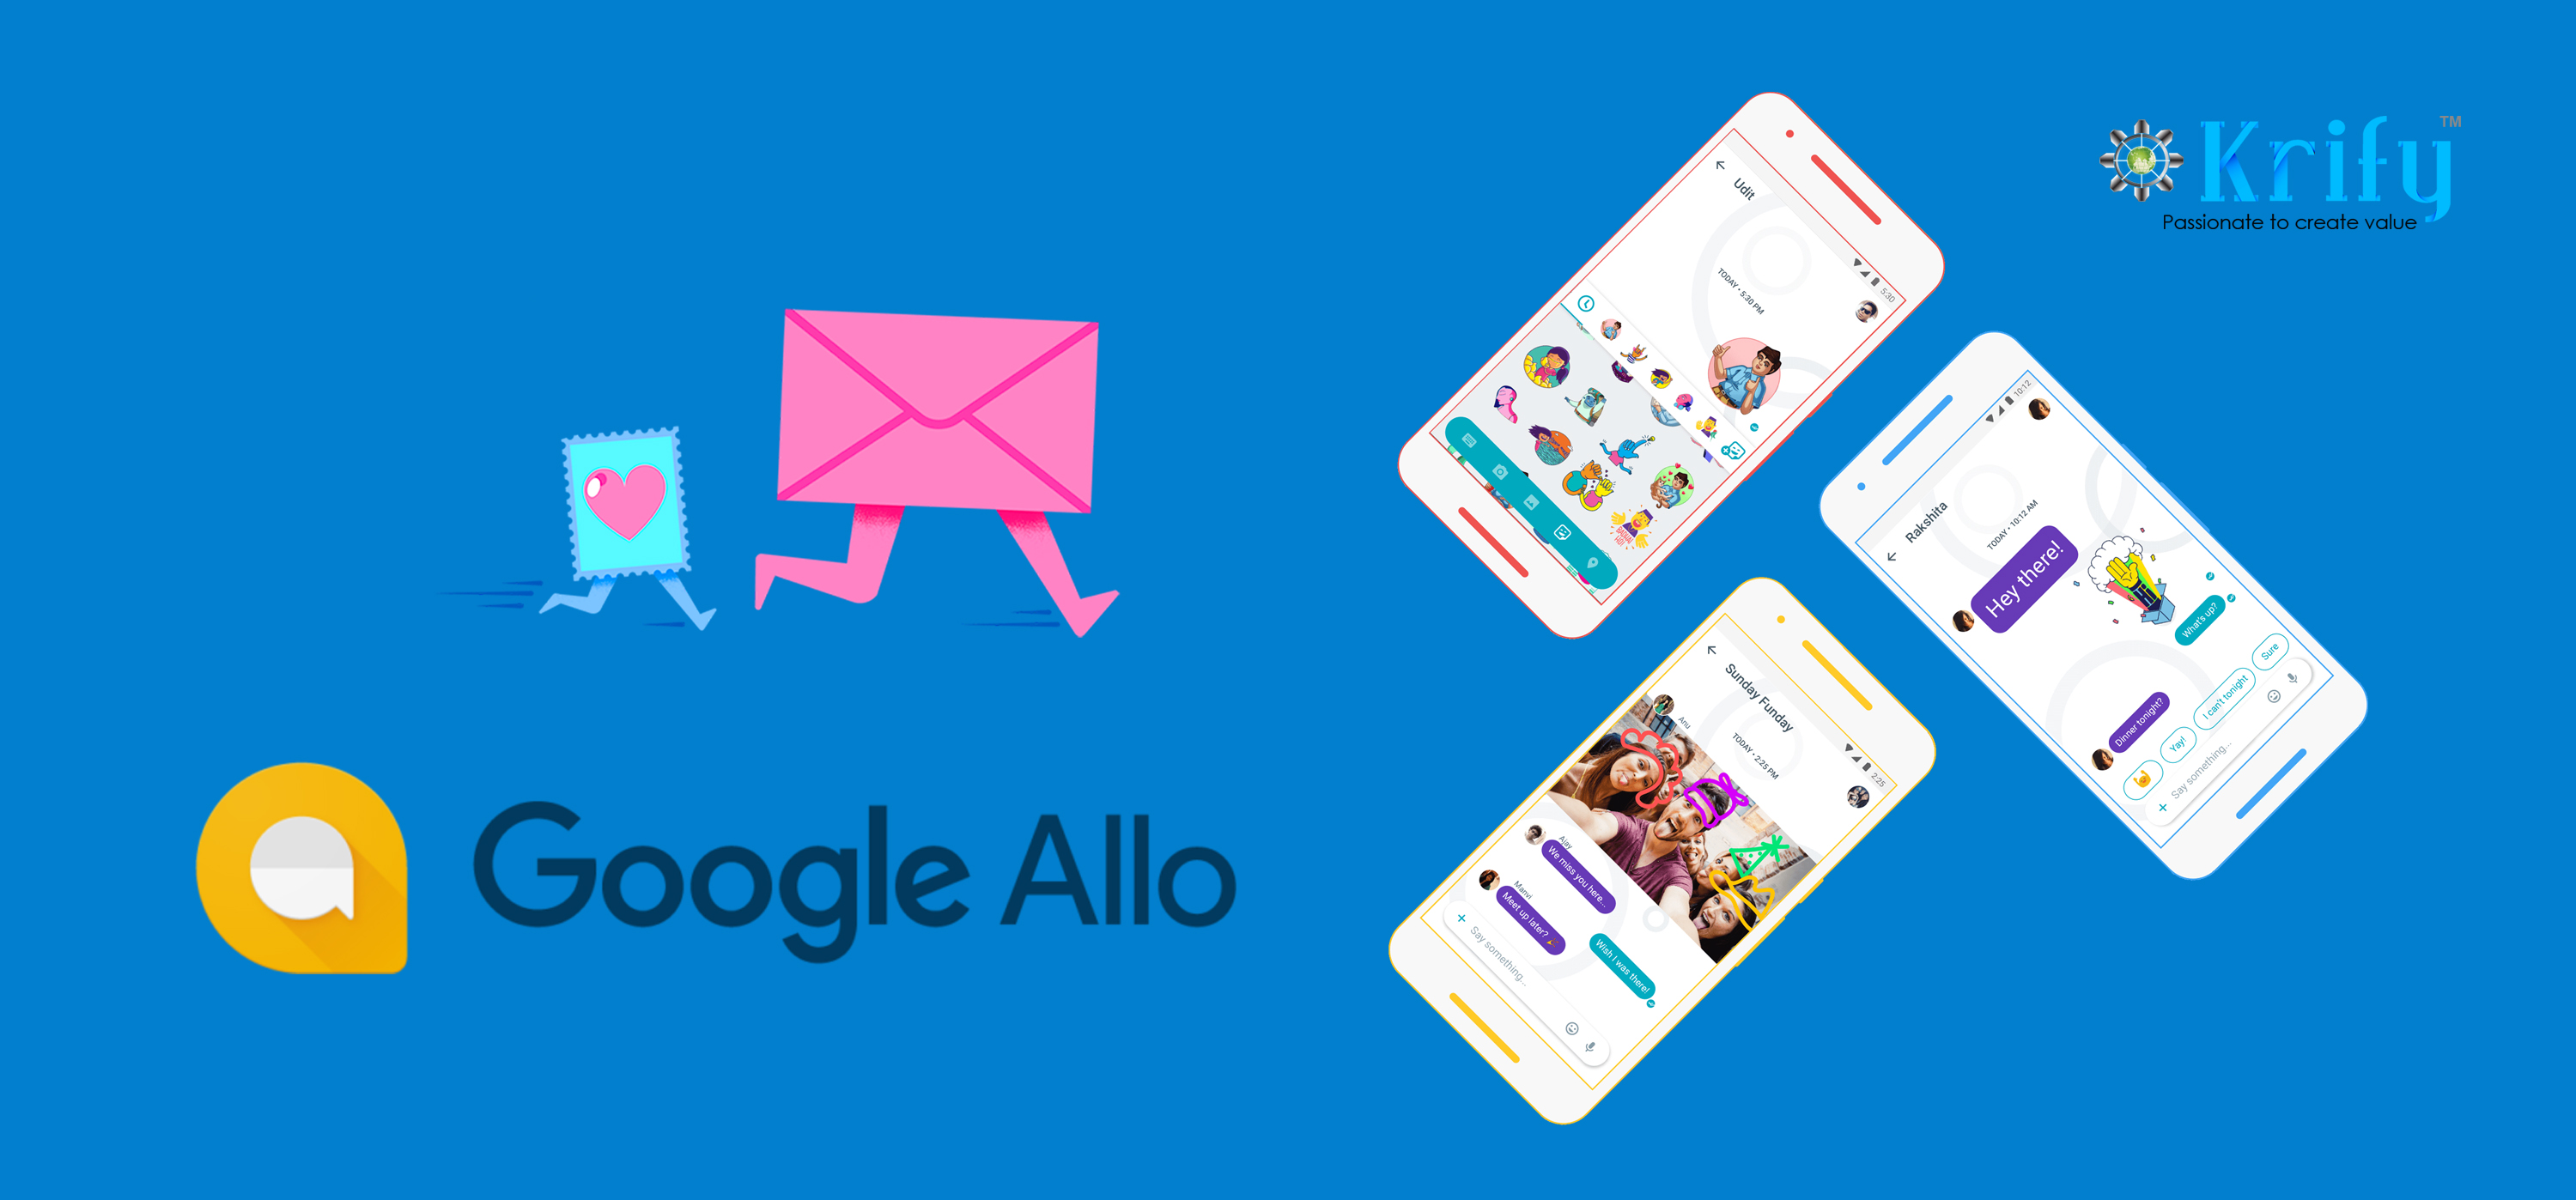 Google allo conversation moving